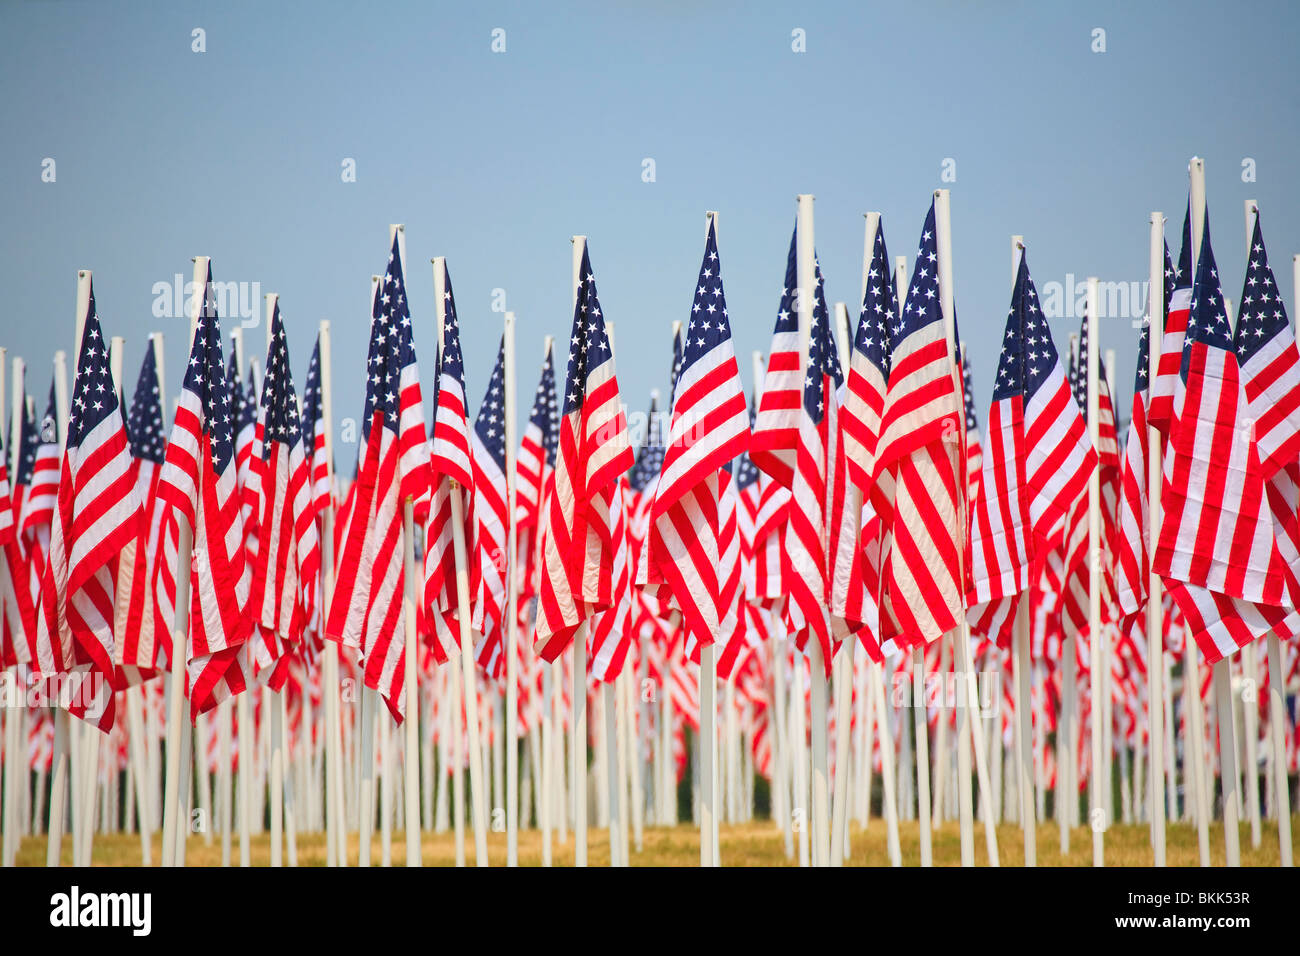 A Display Of Many Flags Of The United States Of America - Stock Image